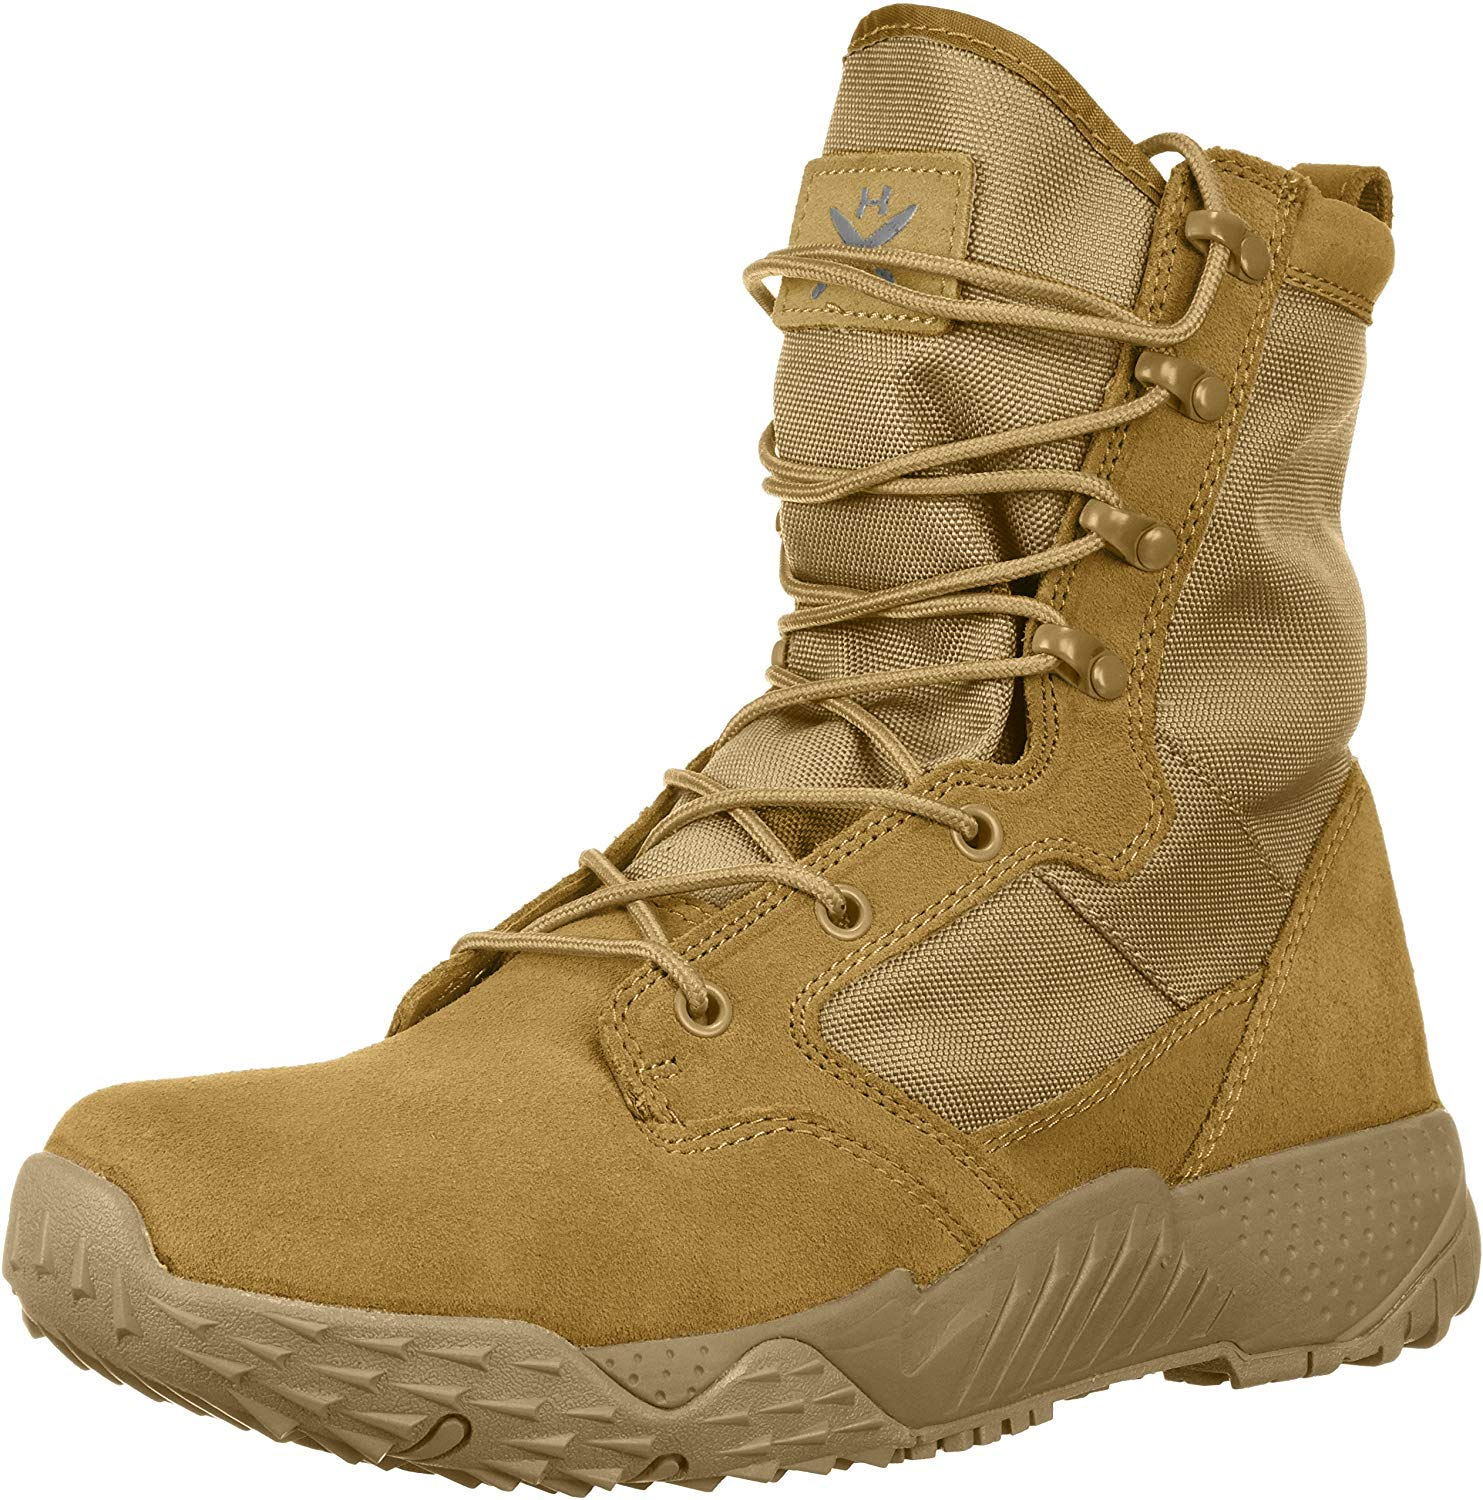 Under Armour Jungle Military Tactical